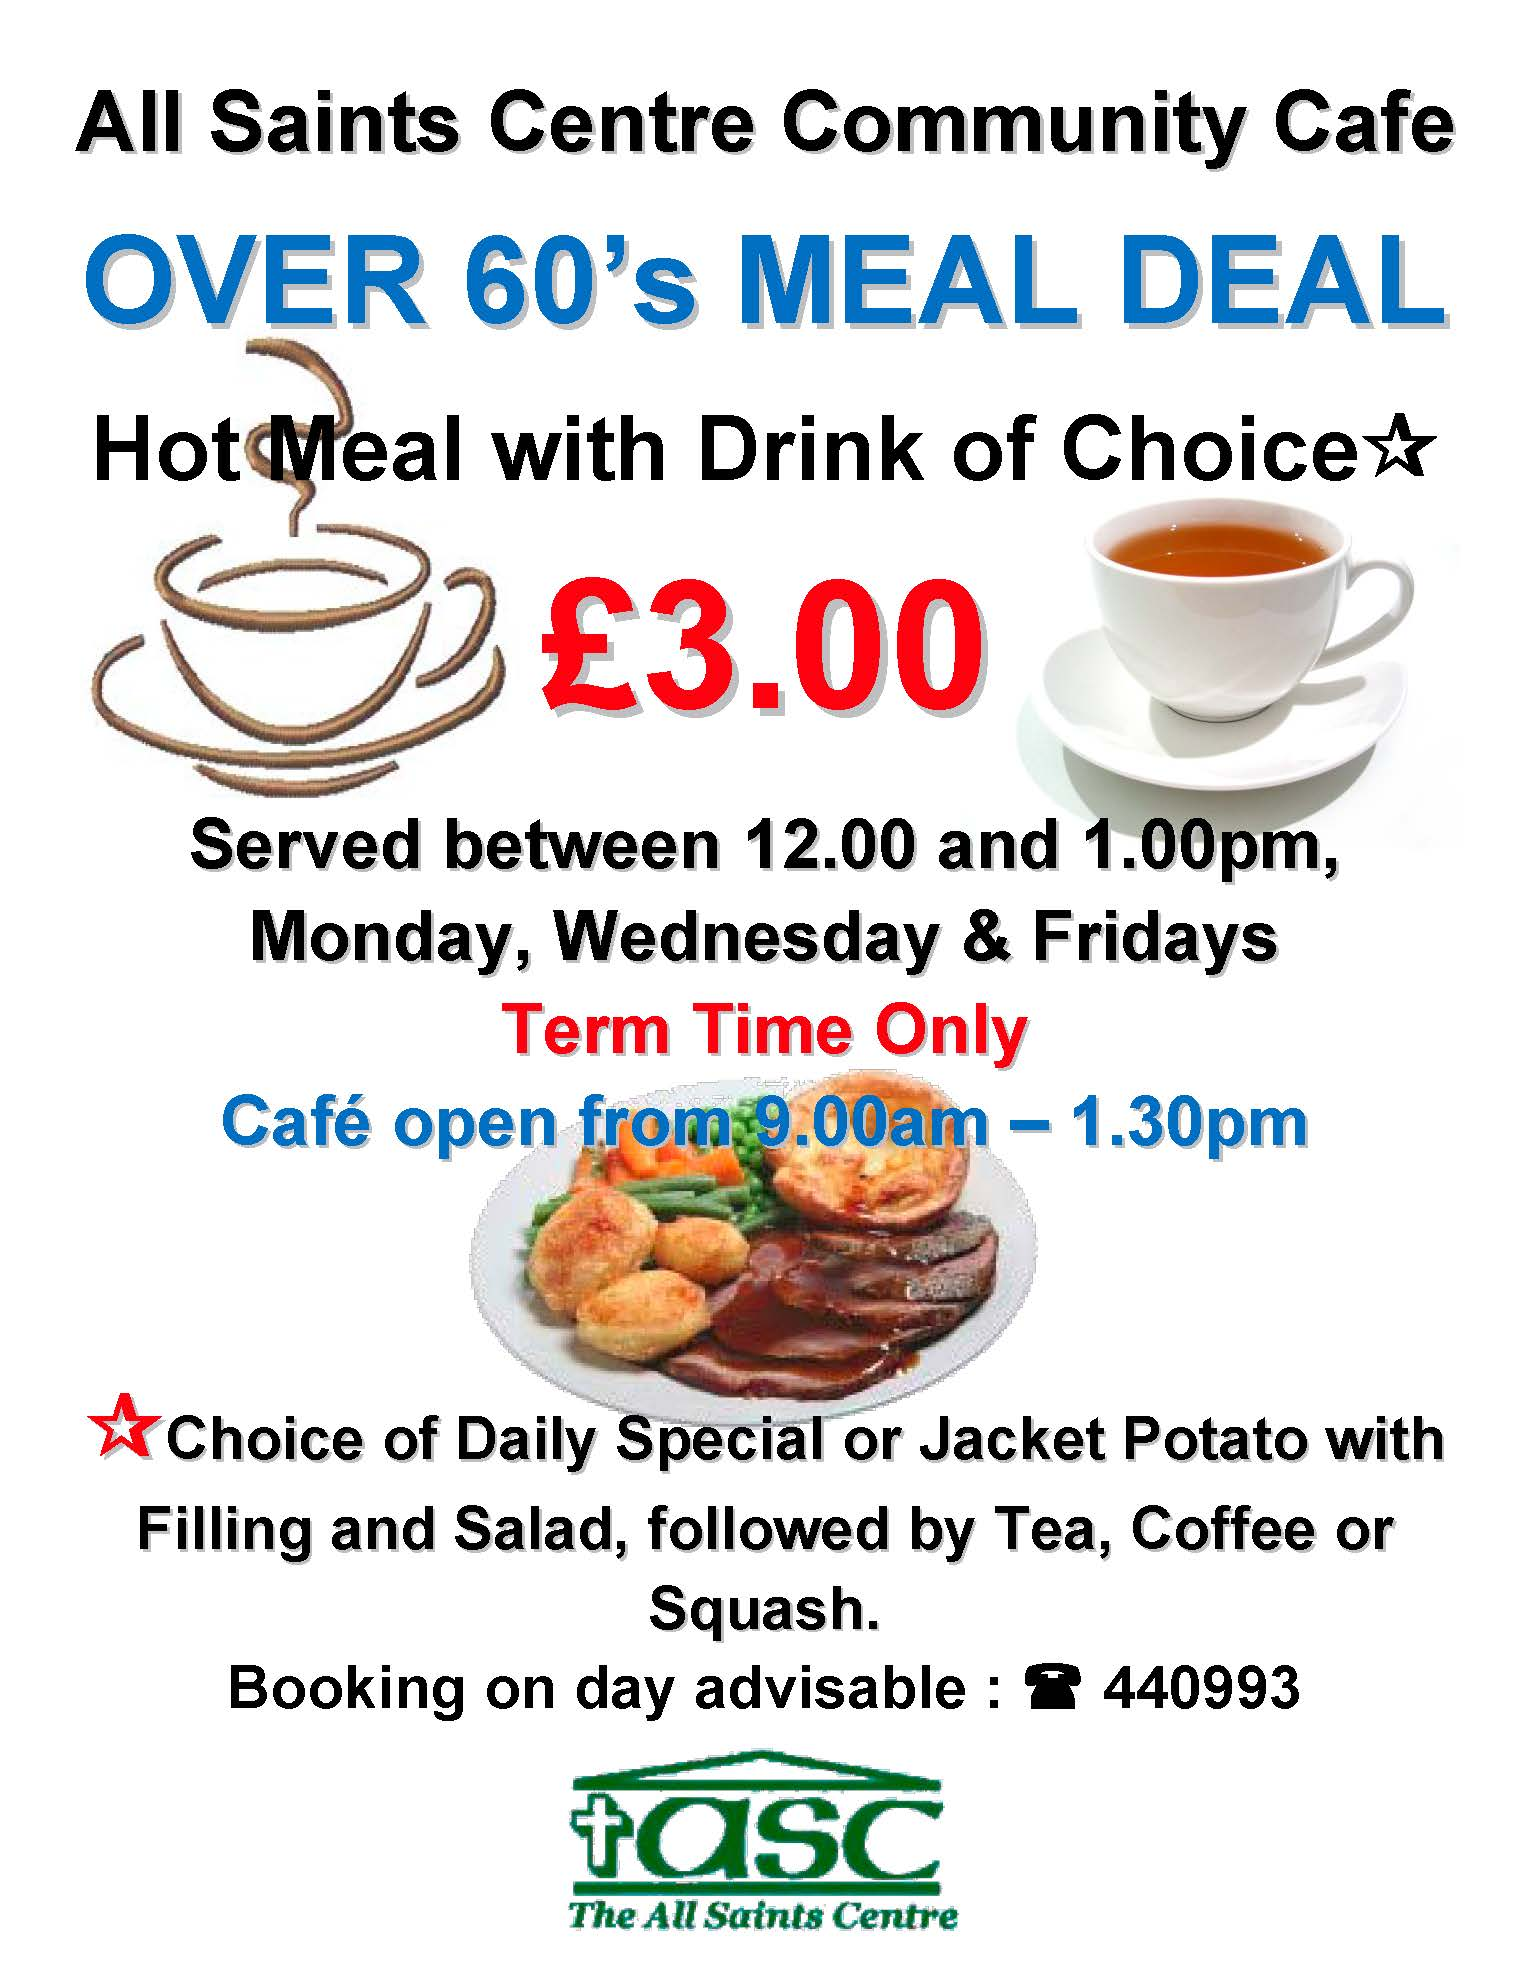 over-60-meal-deal-promo